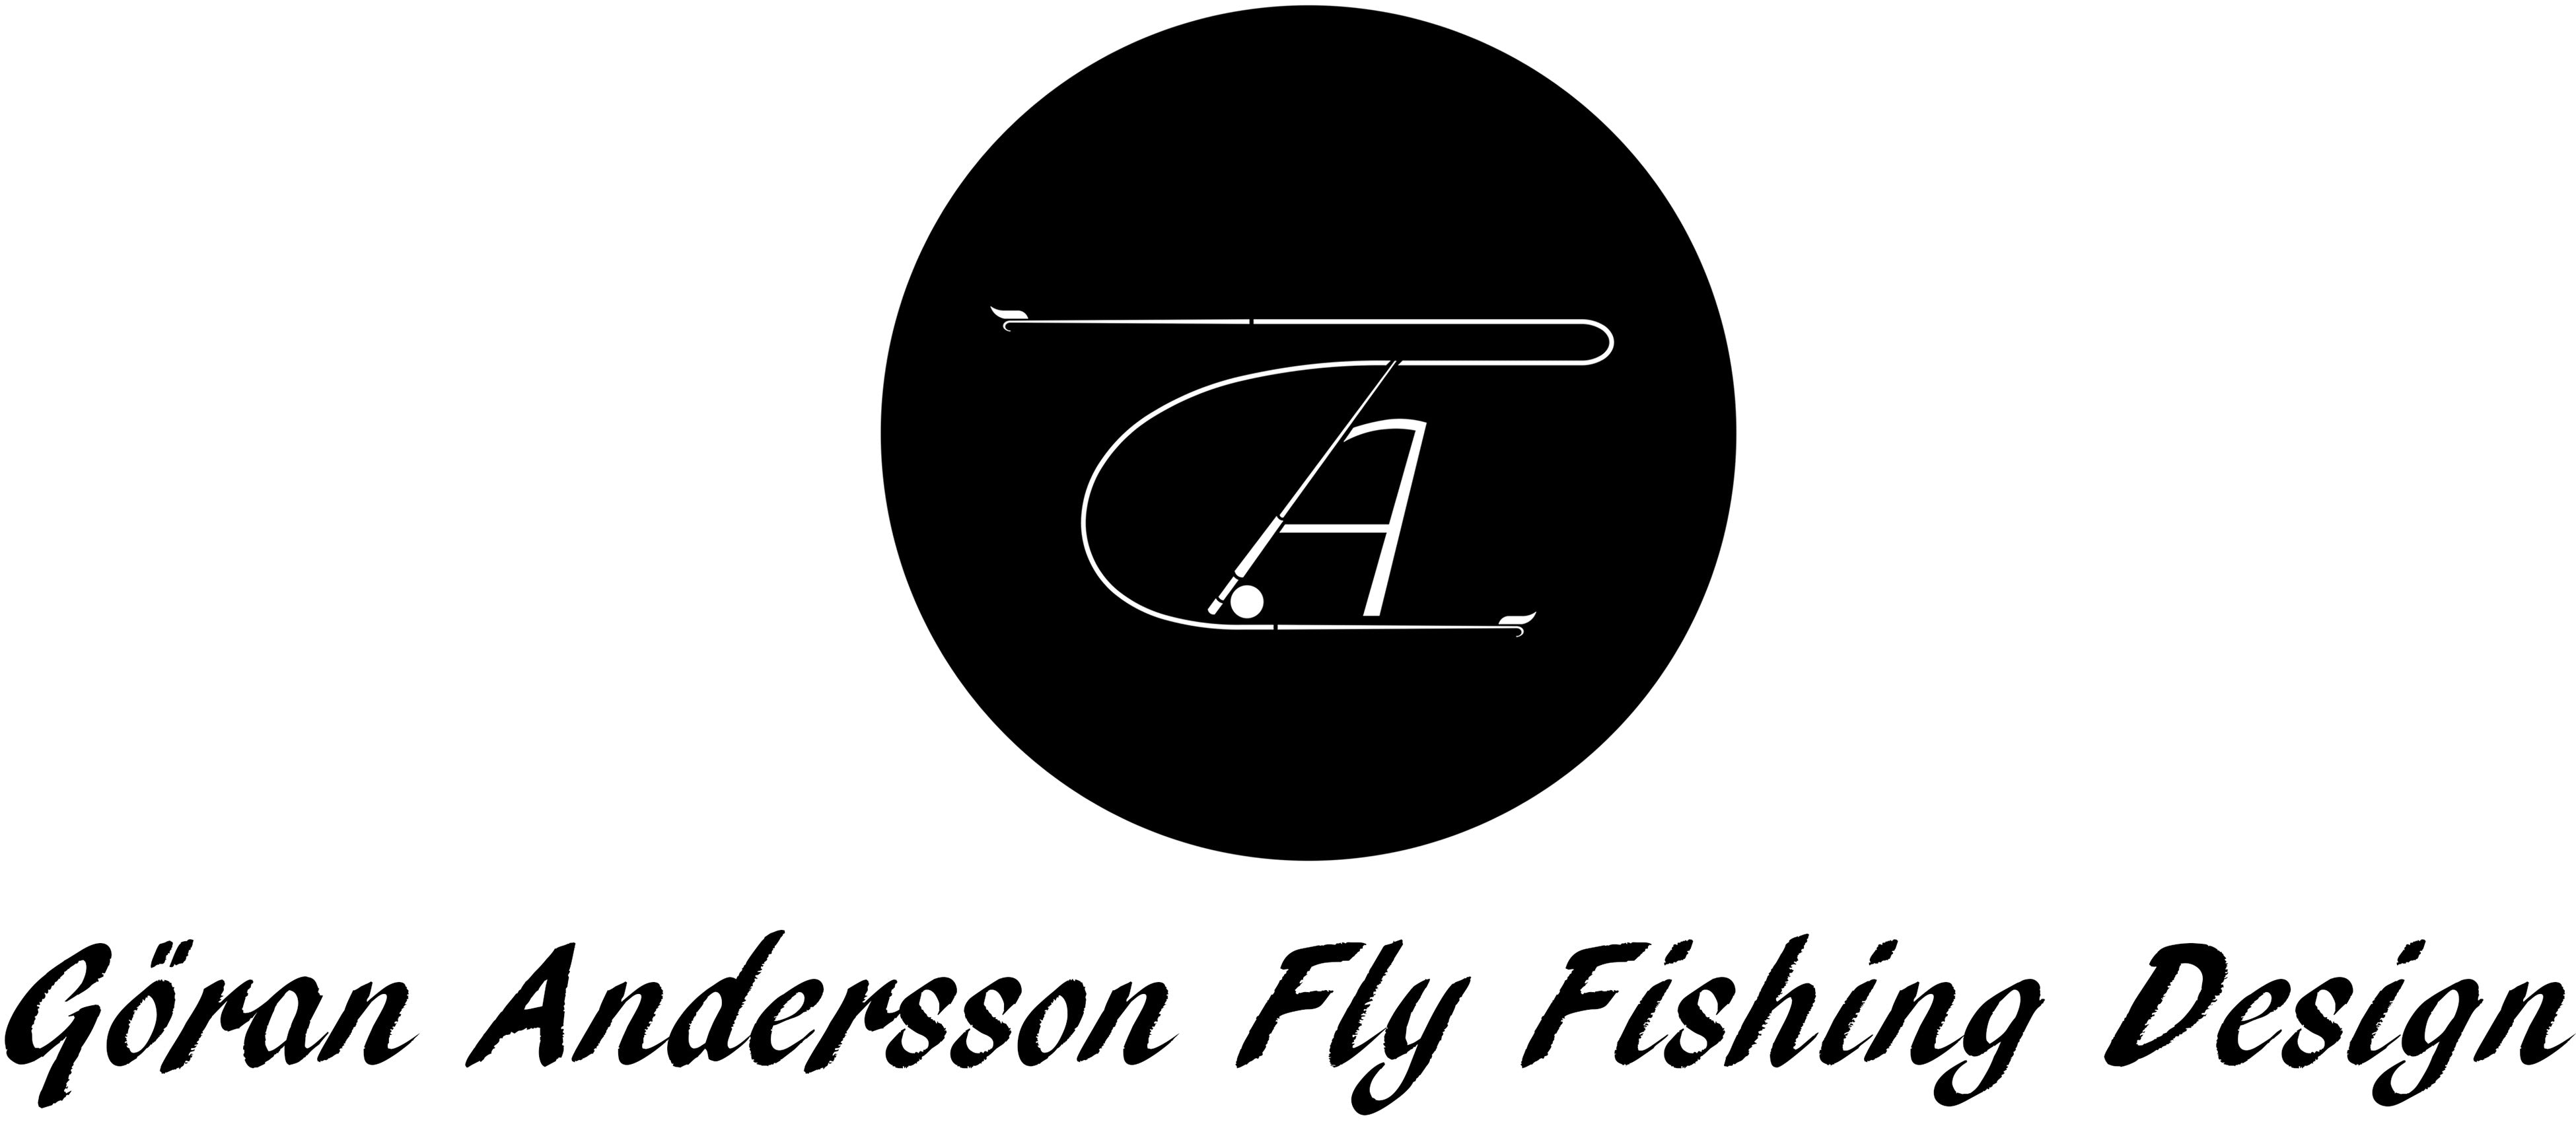 Göran Andersson Fly Fishing Design